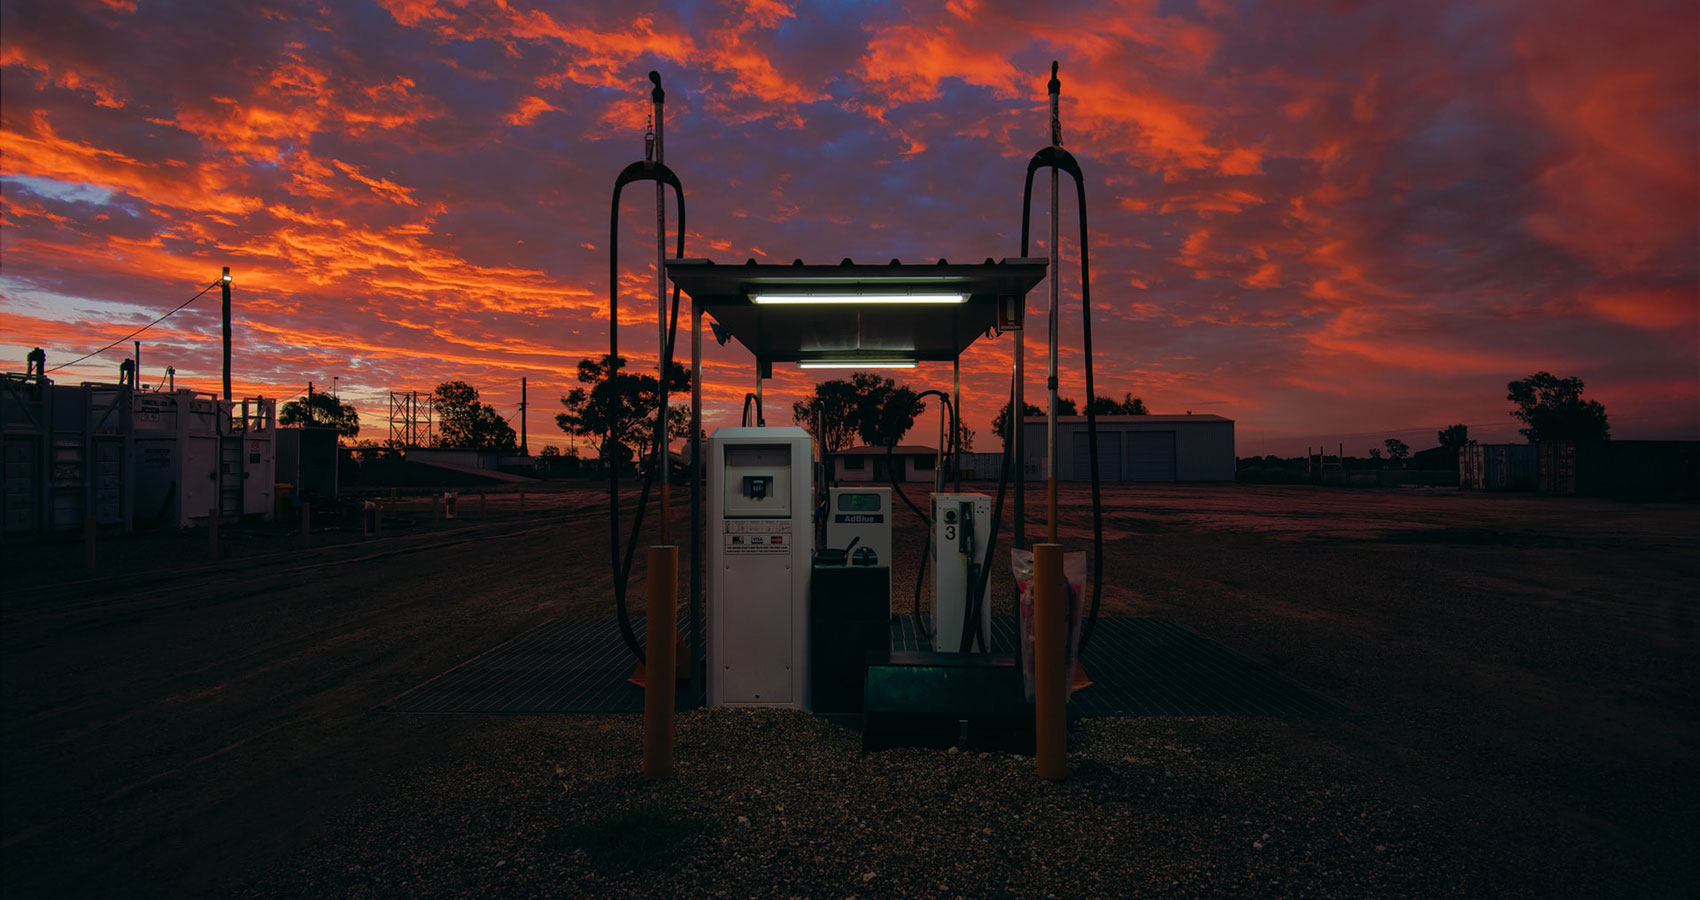 Filling Station, a poem written by Elizabeth Bishop at Spillwords.com